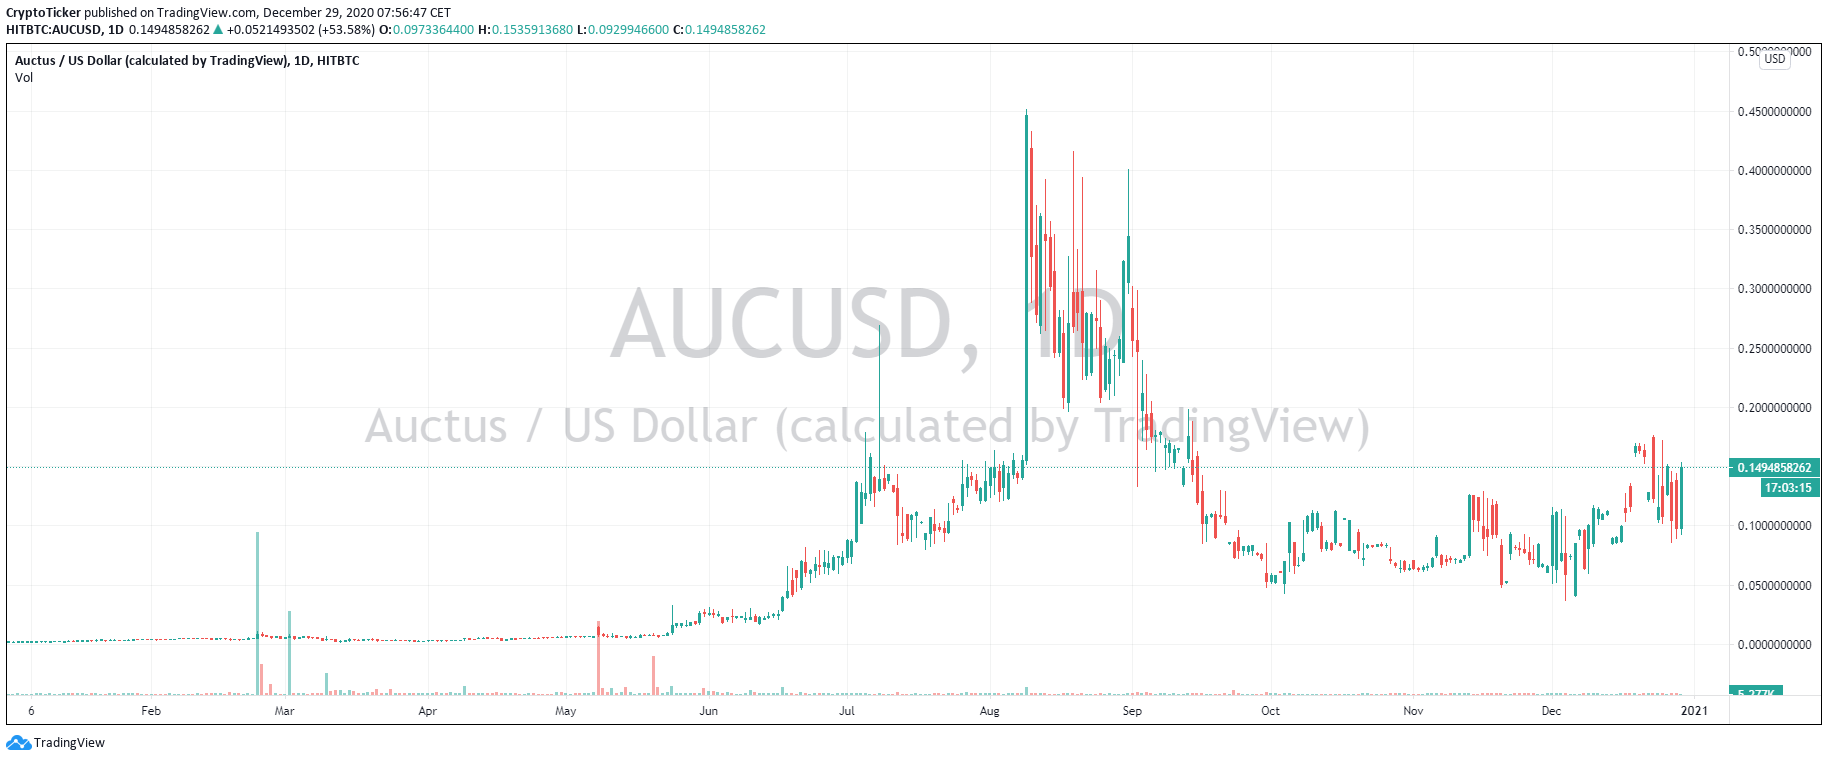 AUC/USD 1-Day Chart of 2020